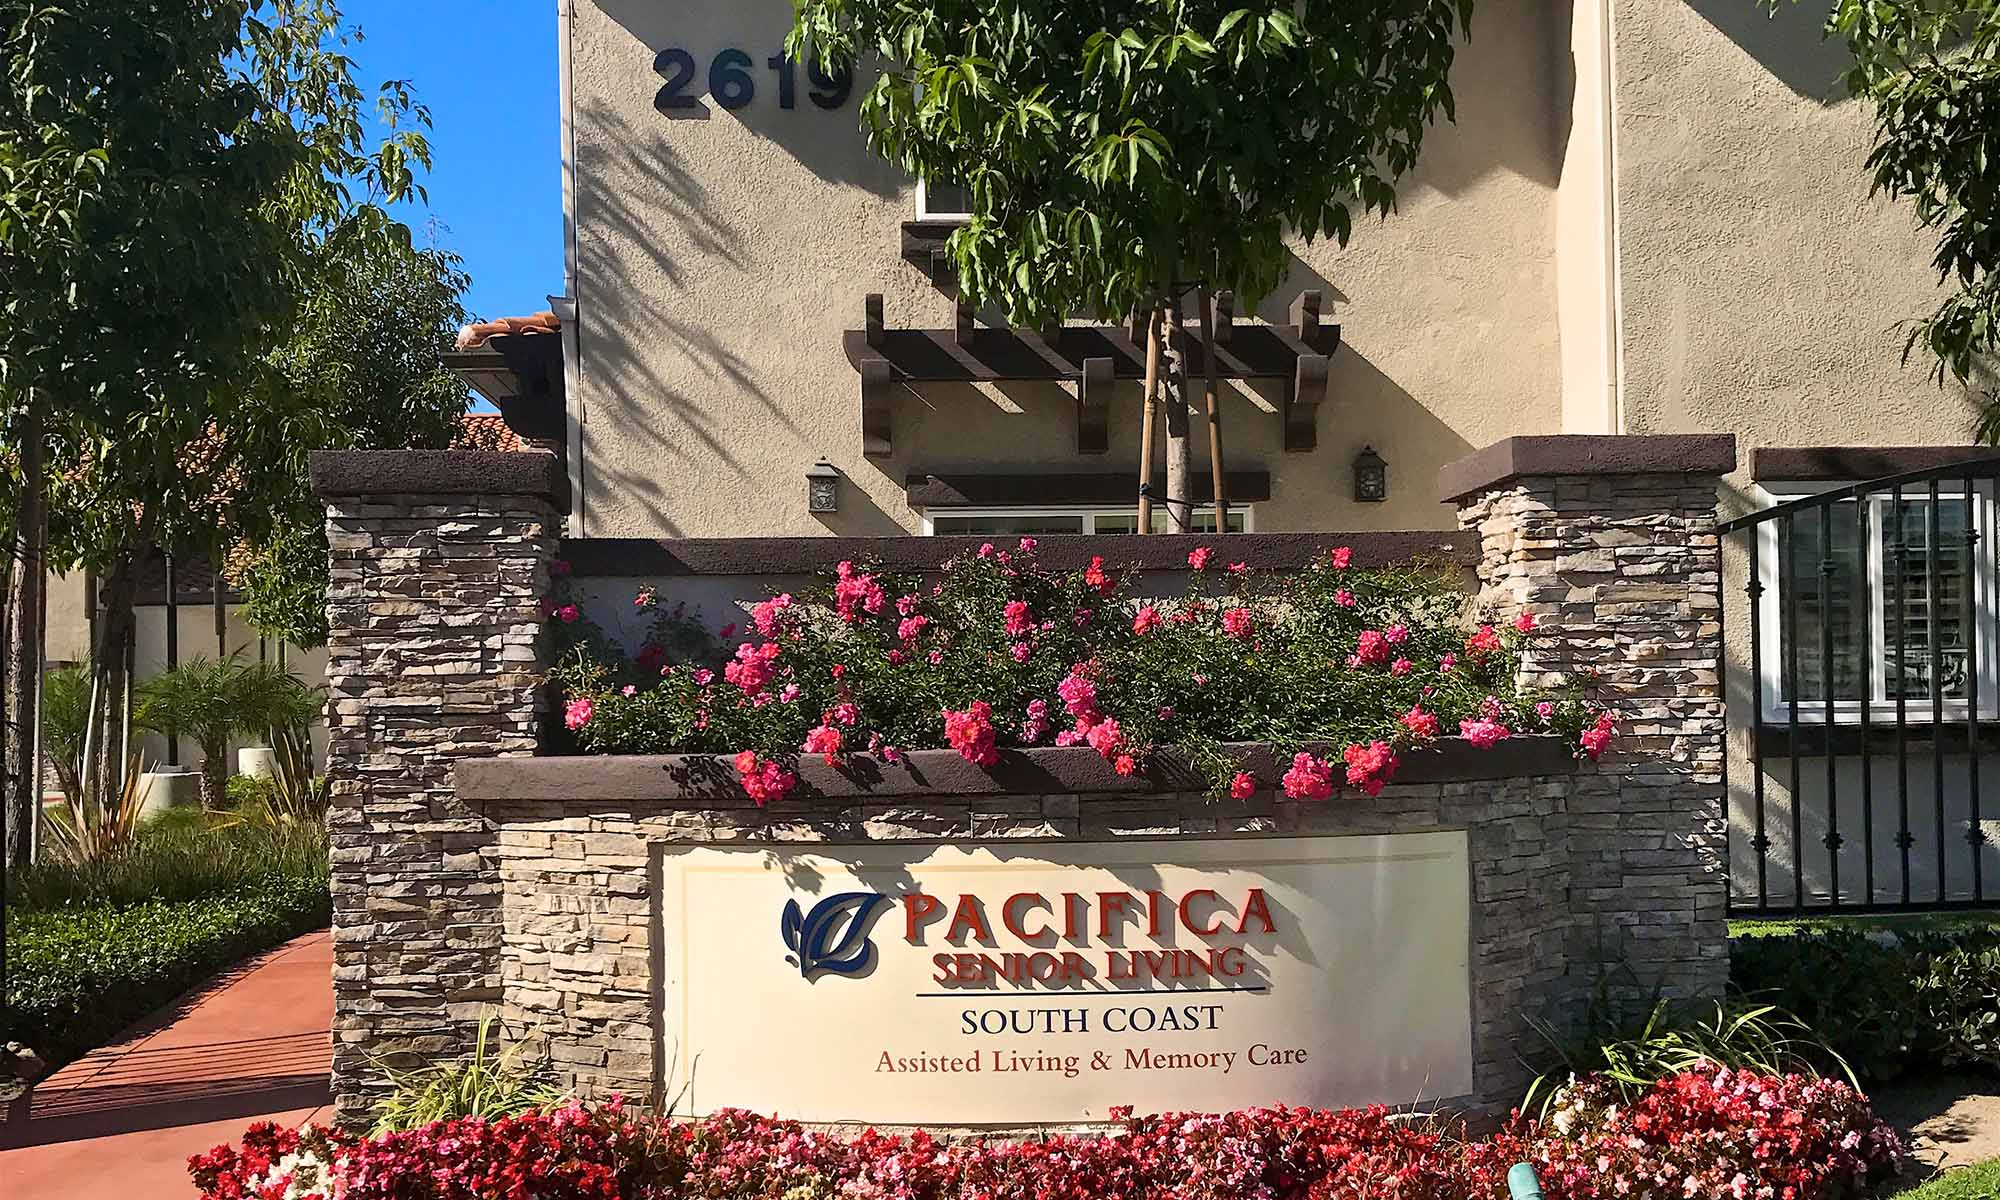 Pacifica Senior Living South Coast Exterior